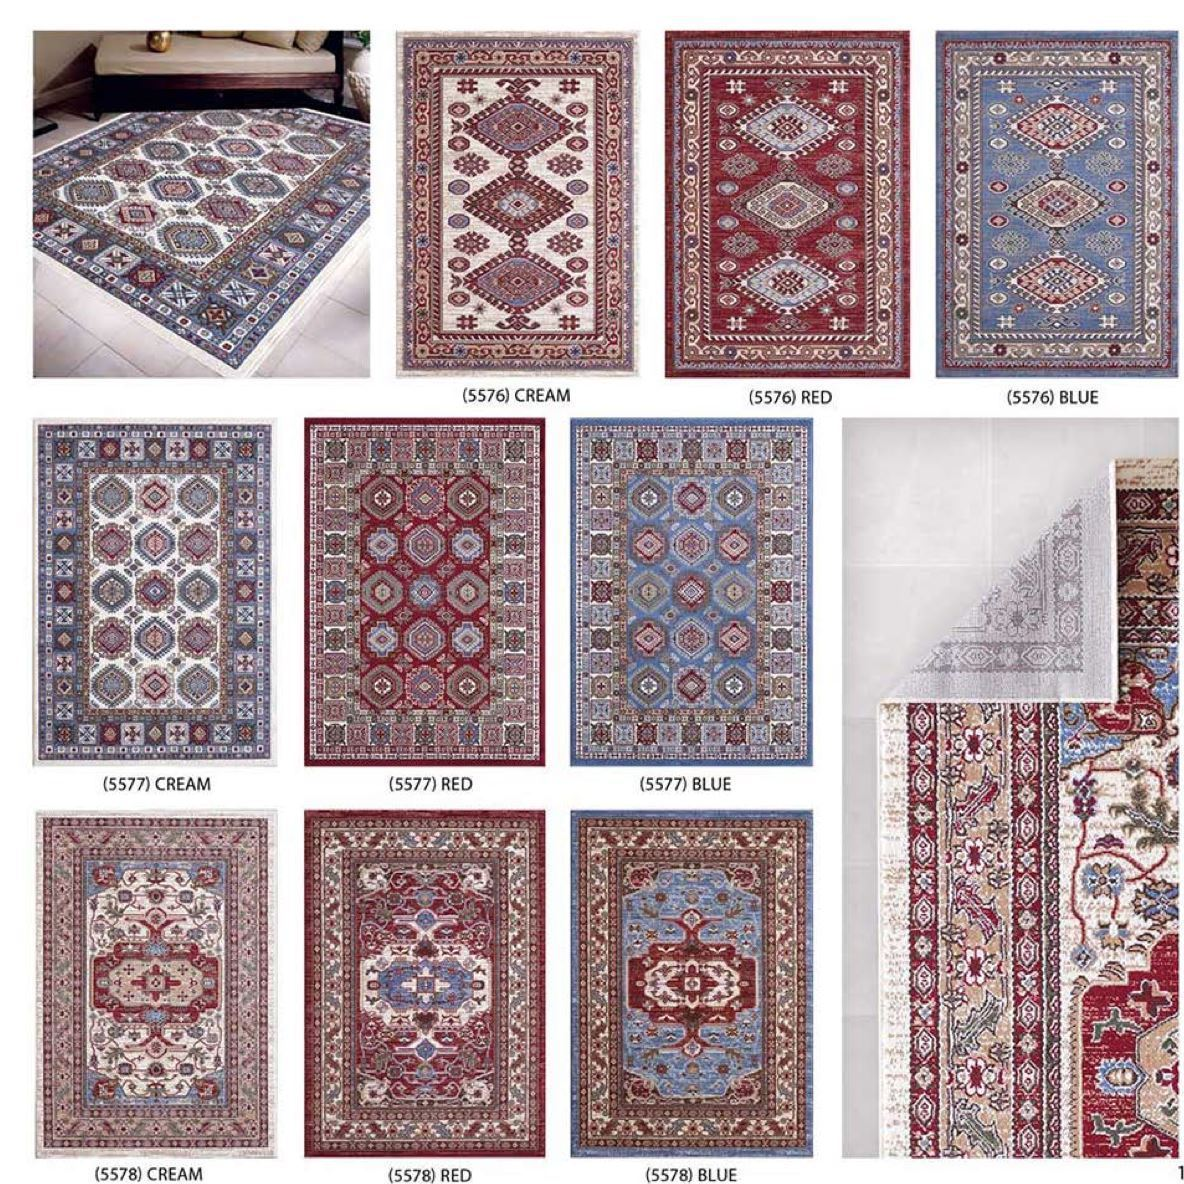 Details about Large Elegant Classic Traditional Bedroom Area Rugs Oriental  Living Room Carpets